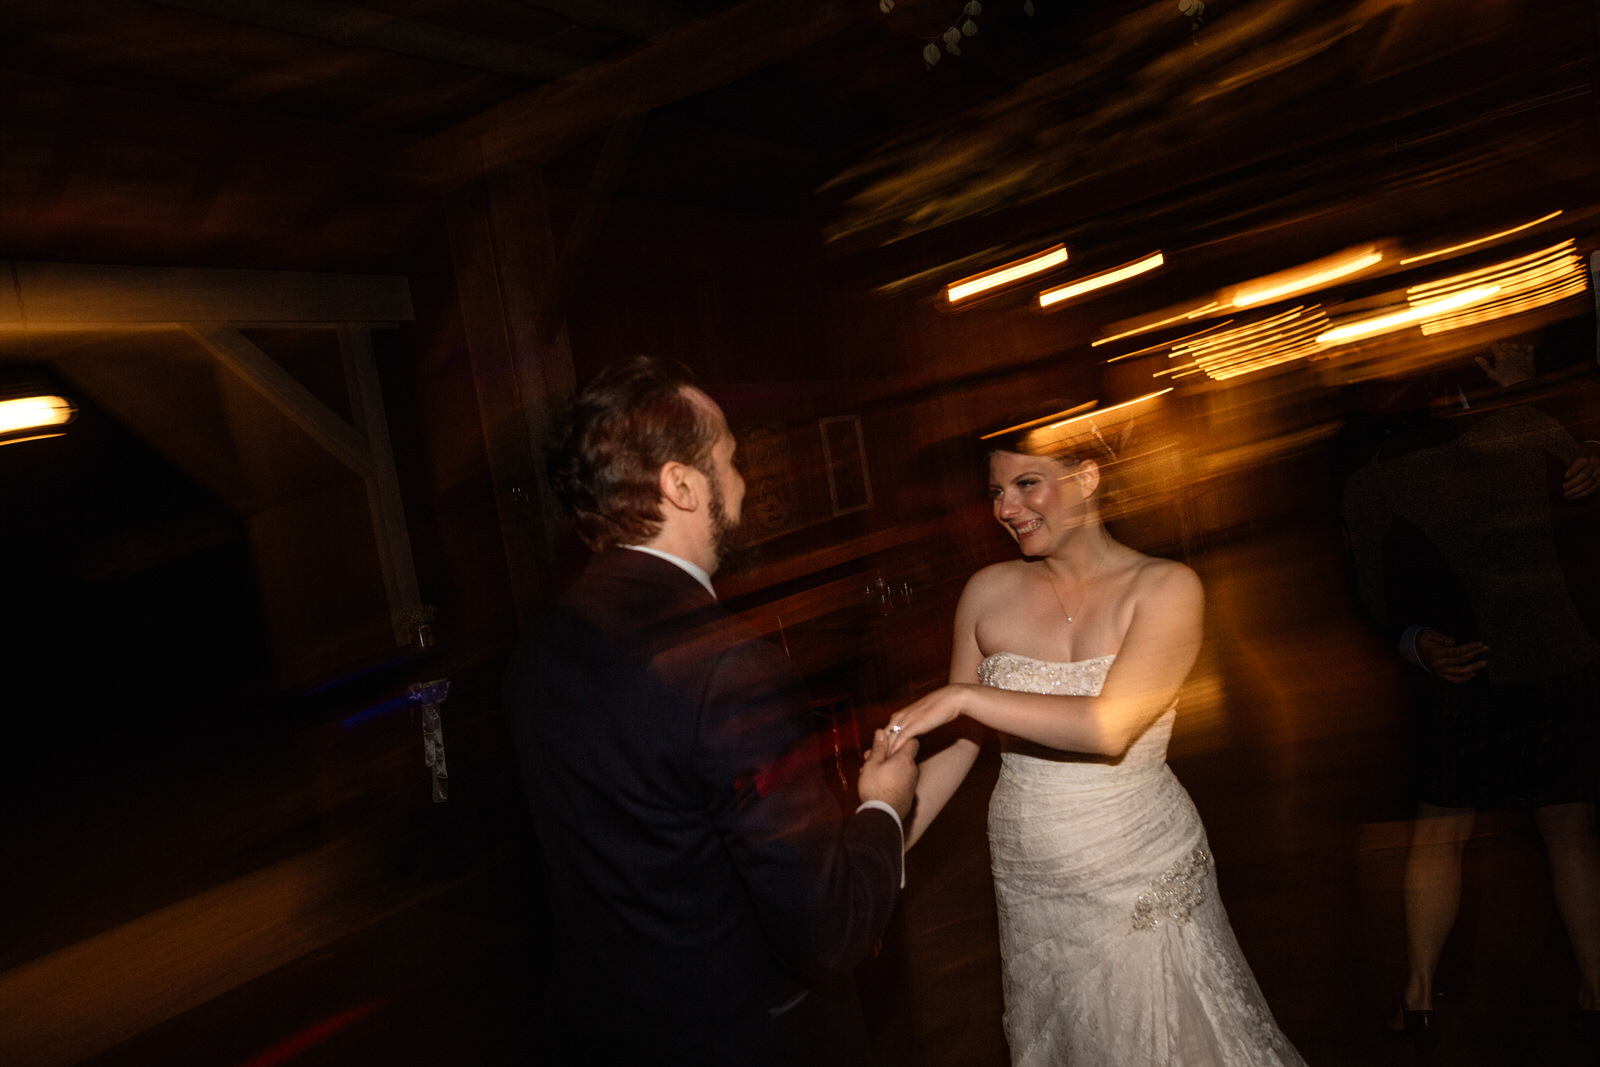 Portland Seattle Destination Wedding Photographer Michigan Millcreek Wilde Barn0095.JPG